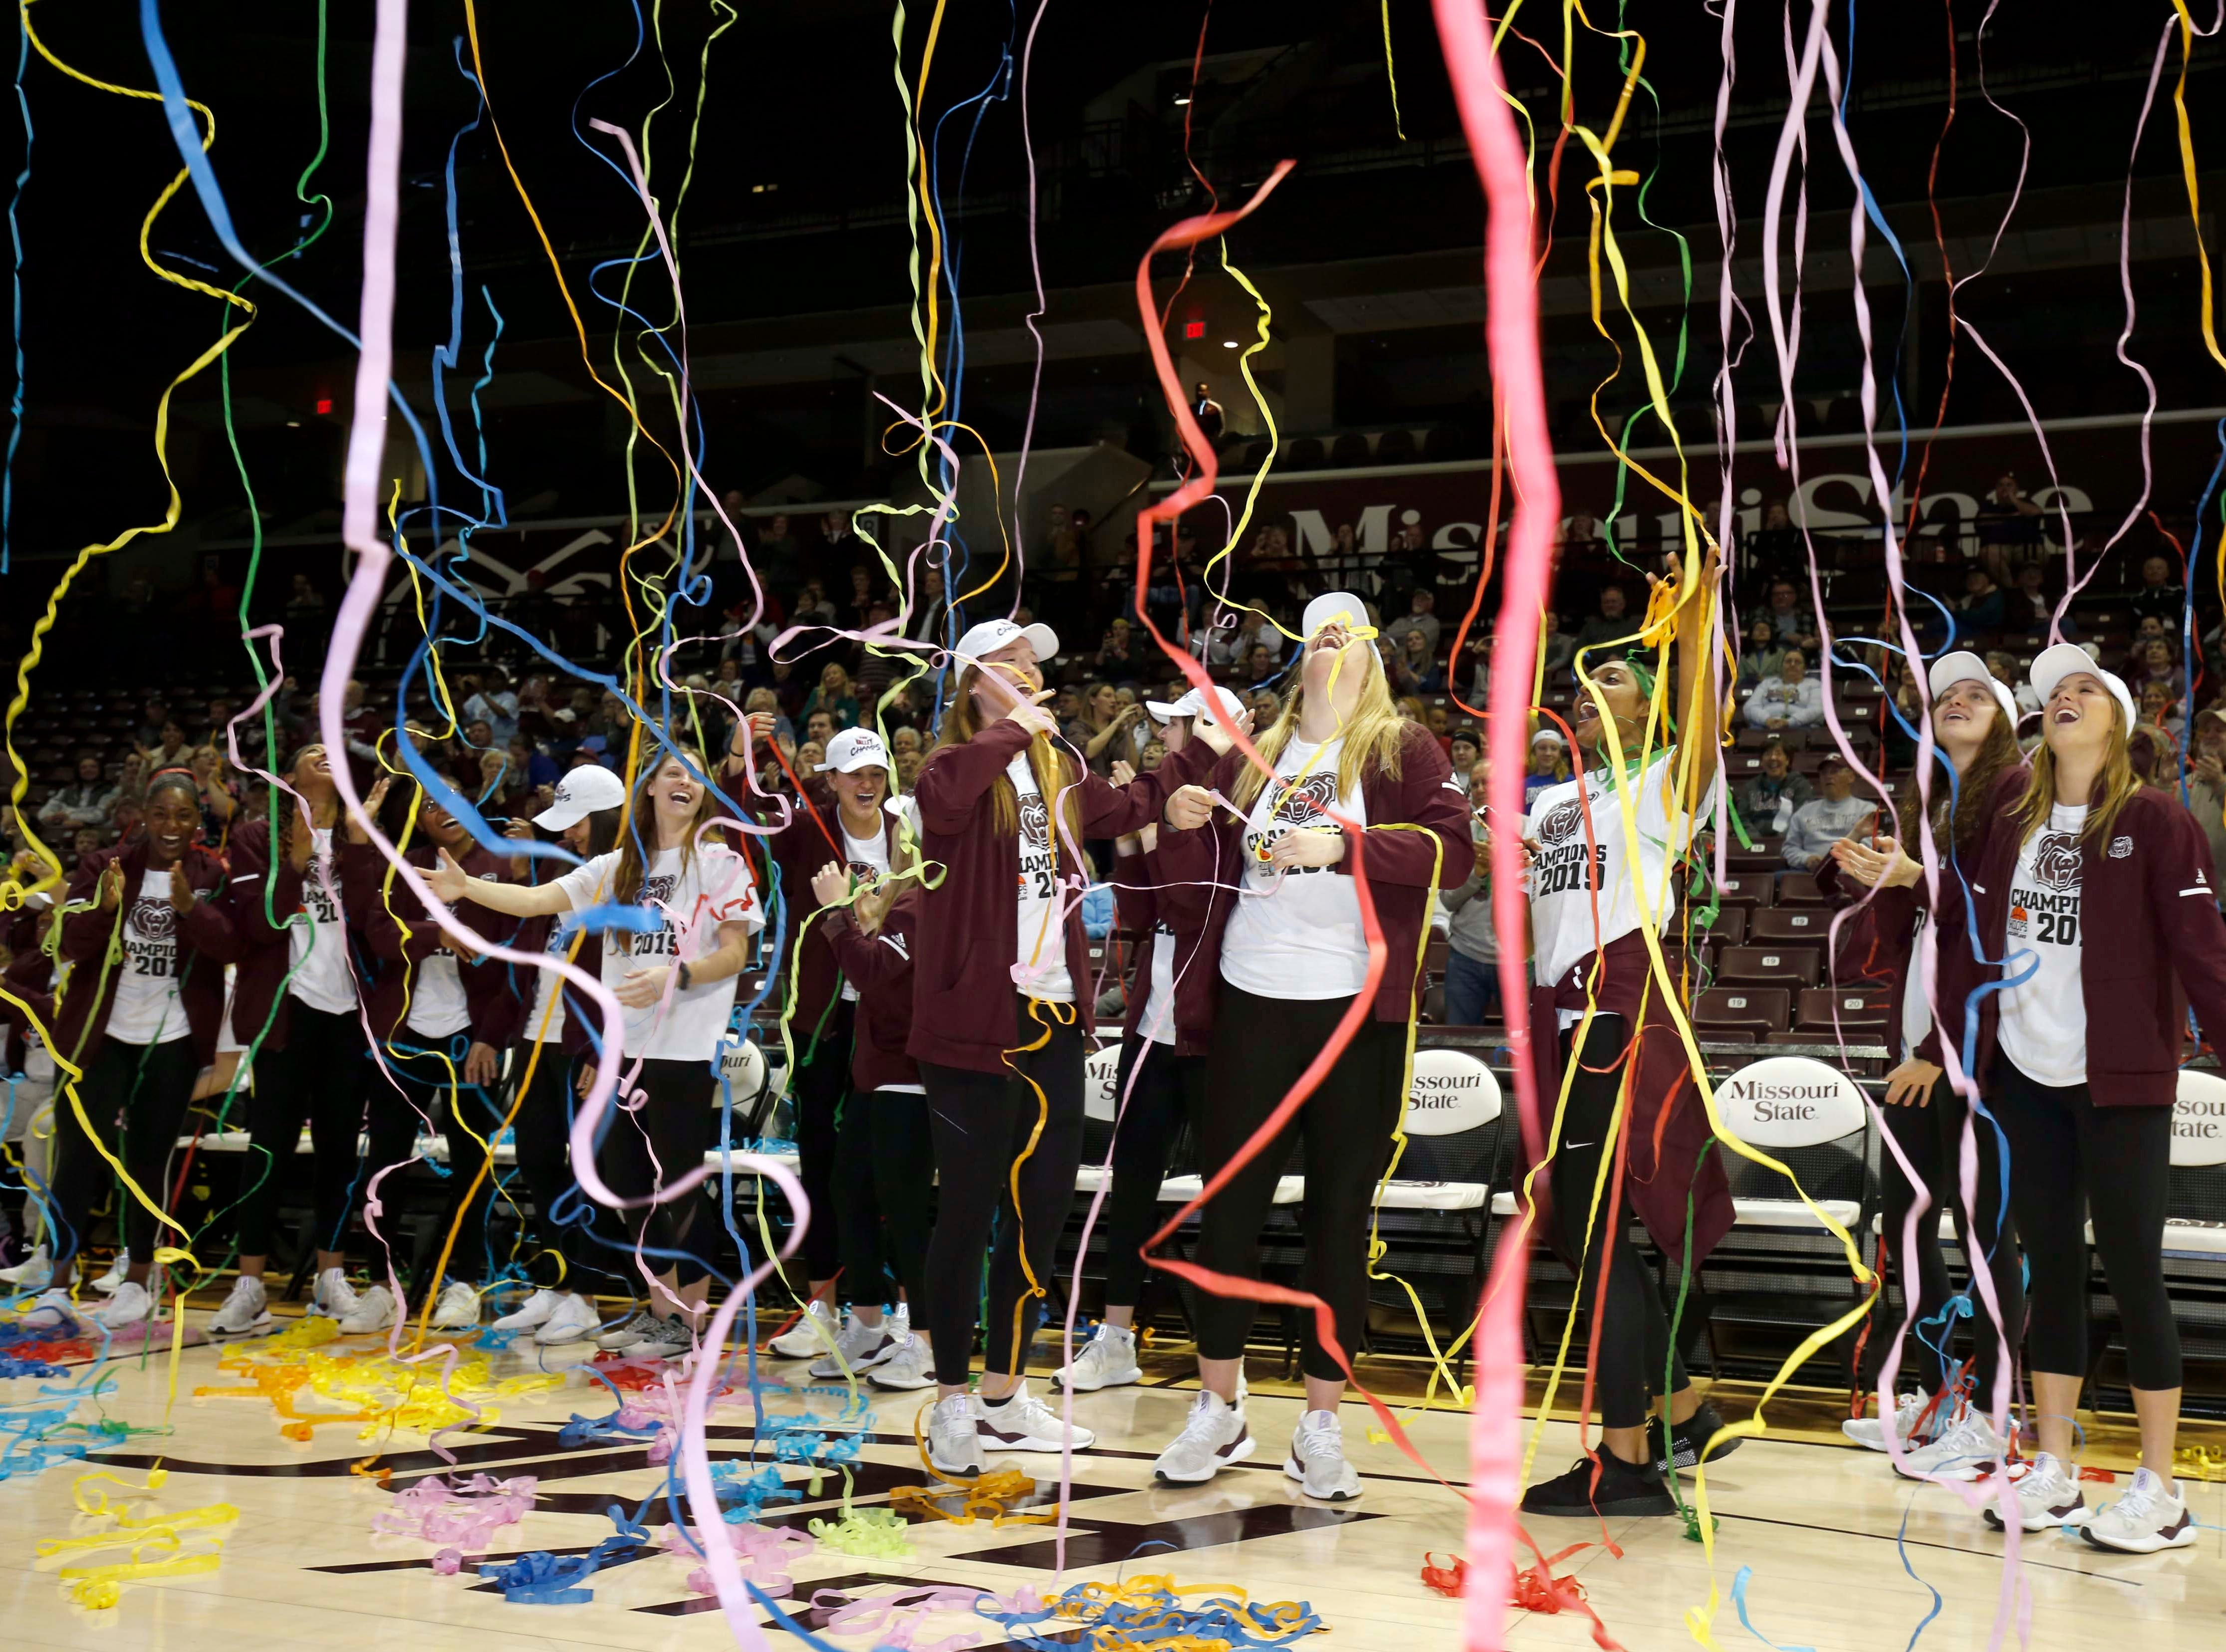 The Lady Bears celebrate their placing in the NCAA Tournament bracket at JQH Arena on March 18, 2019.